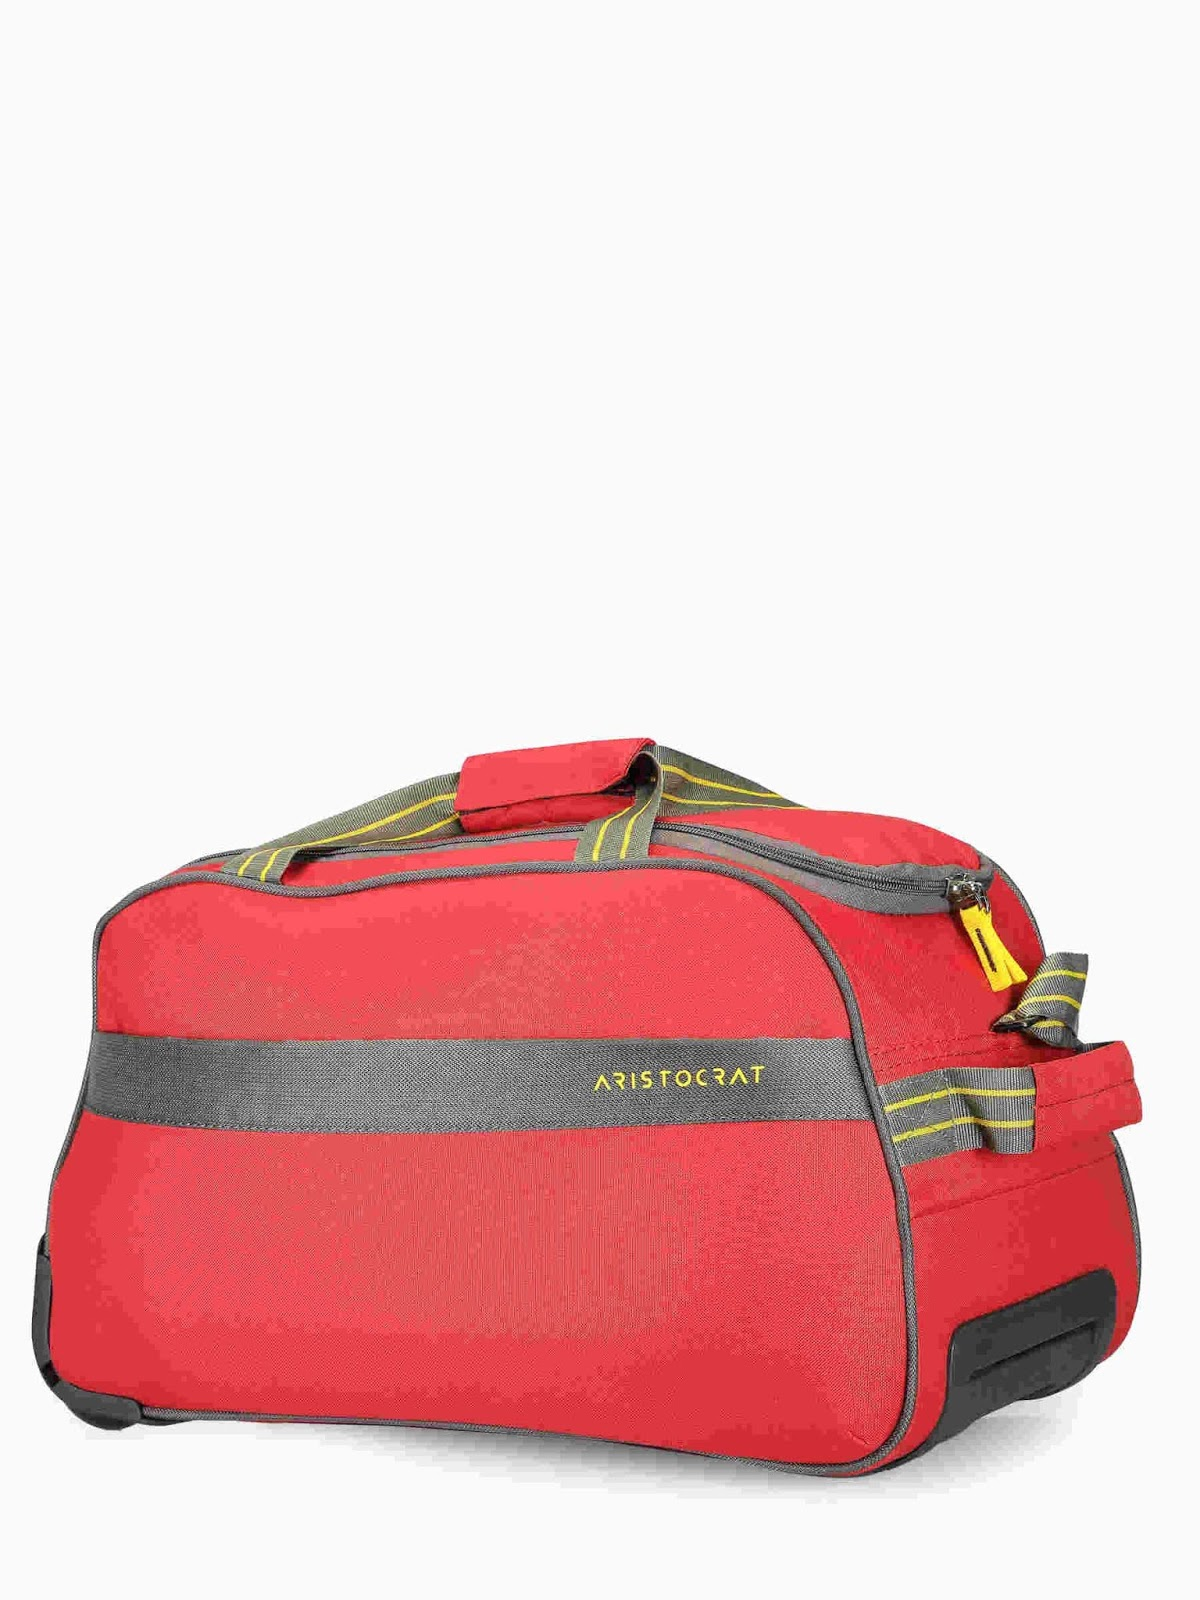 DREAM DUFFLE TROLLEY FROM ARISTOCRAT